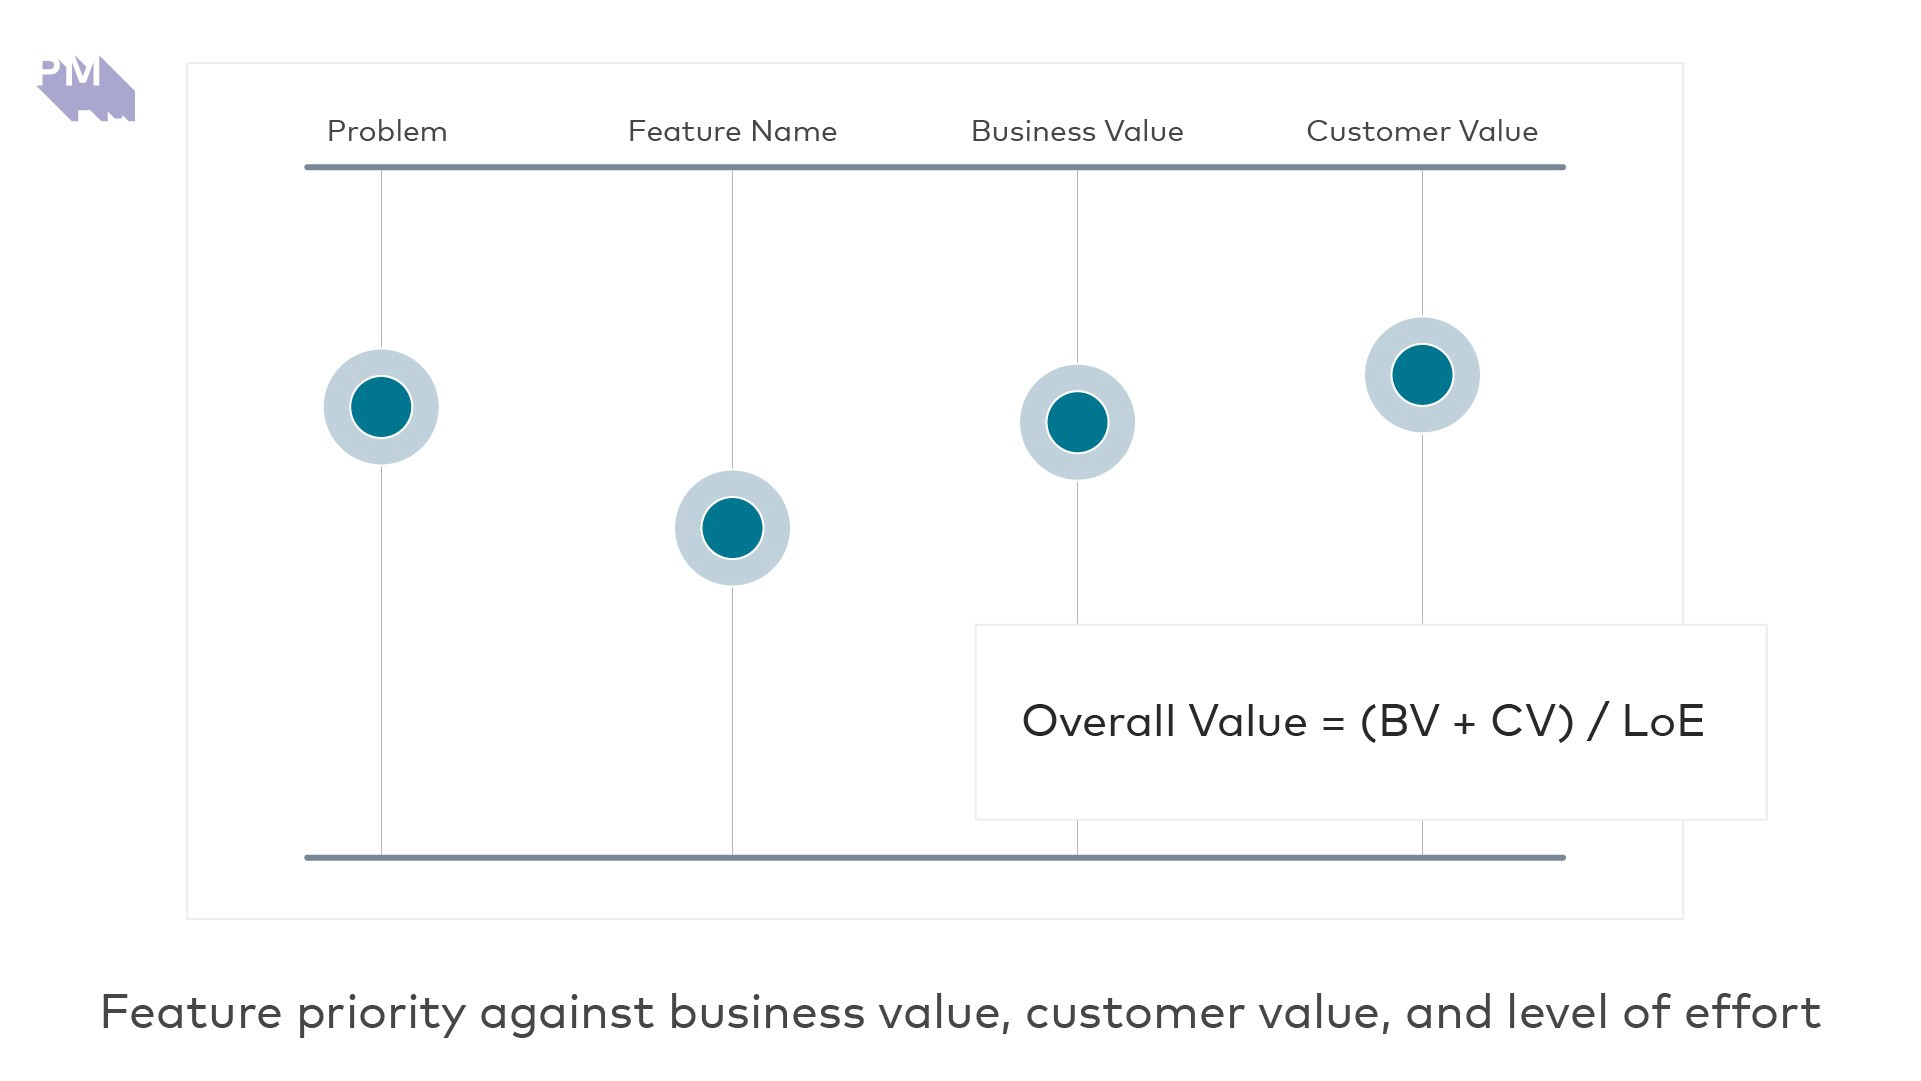 Feature priority against business value, customer value, and level of effort